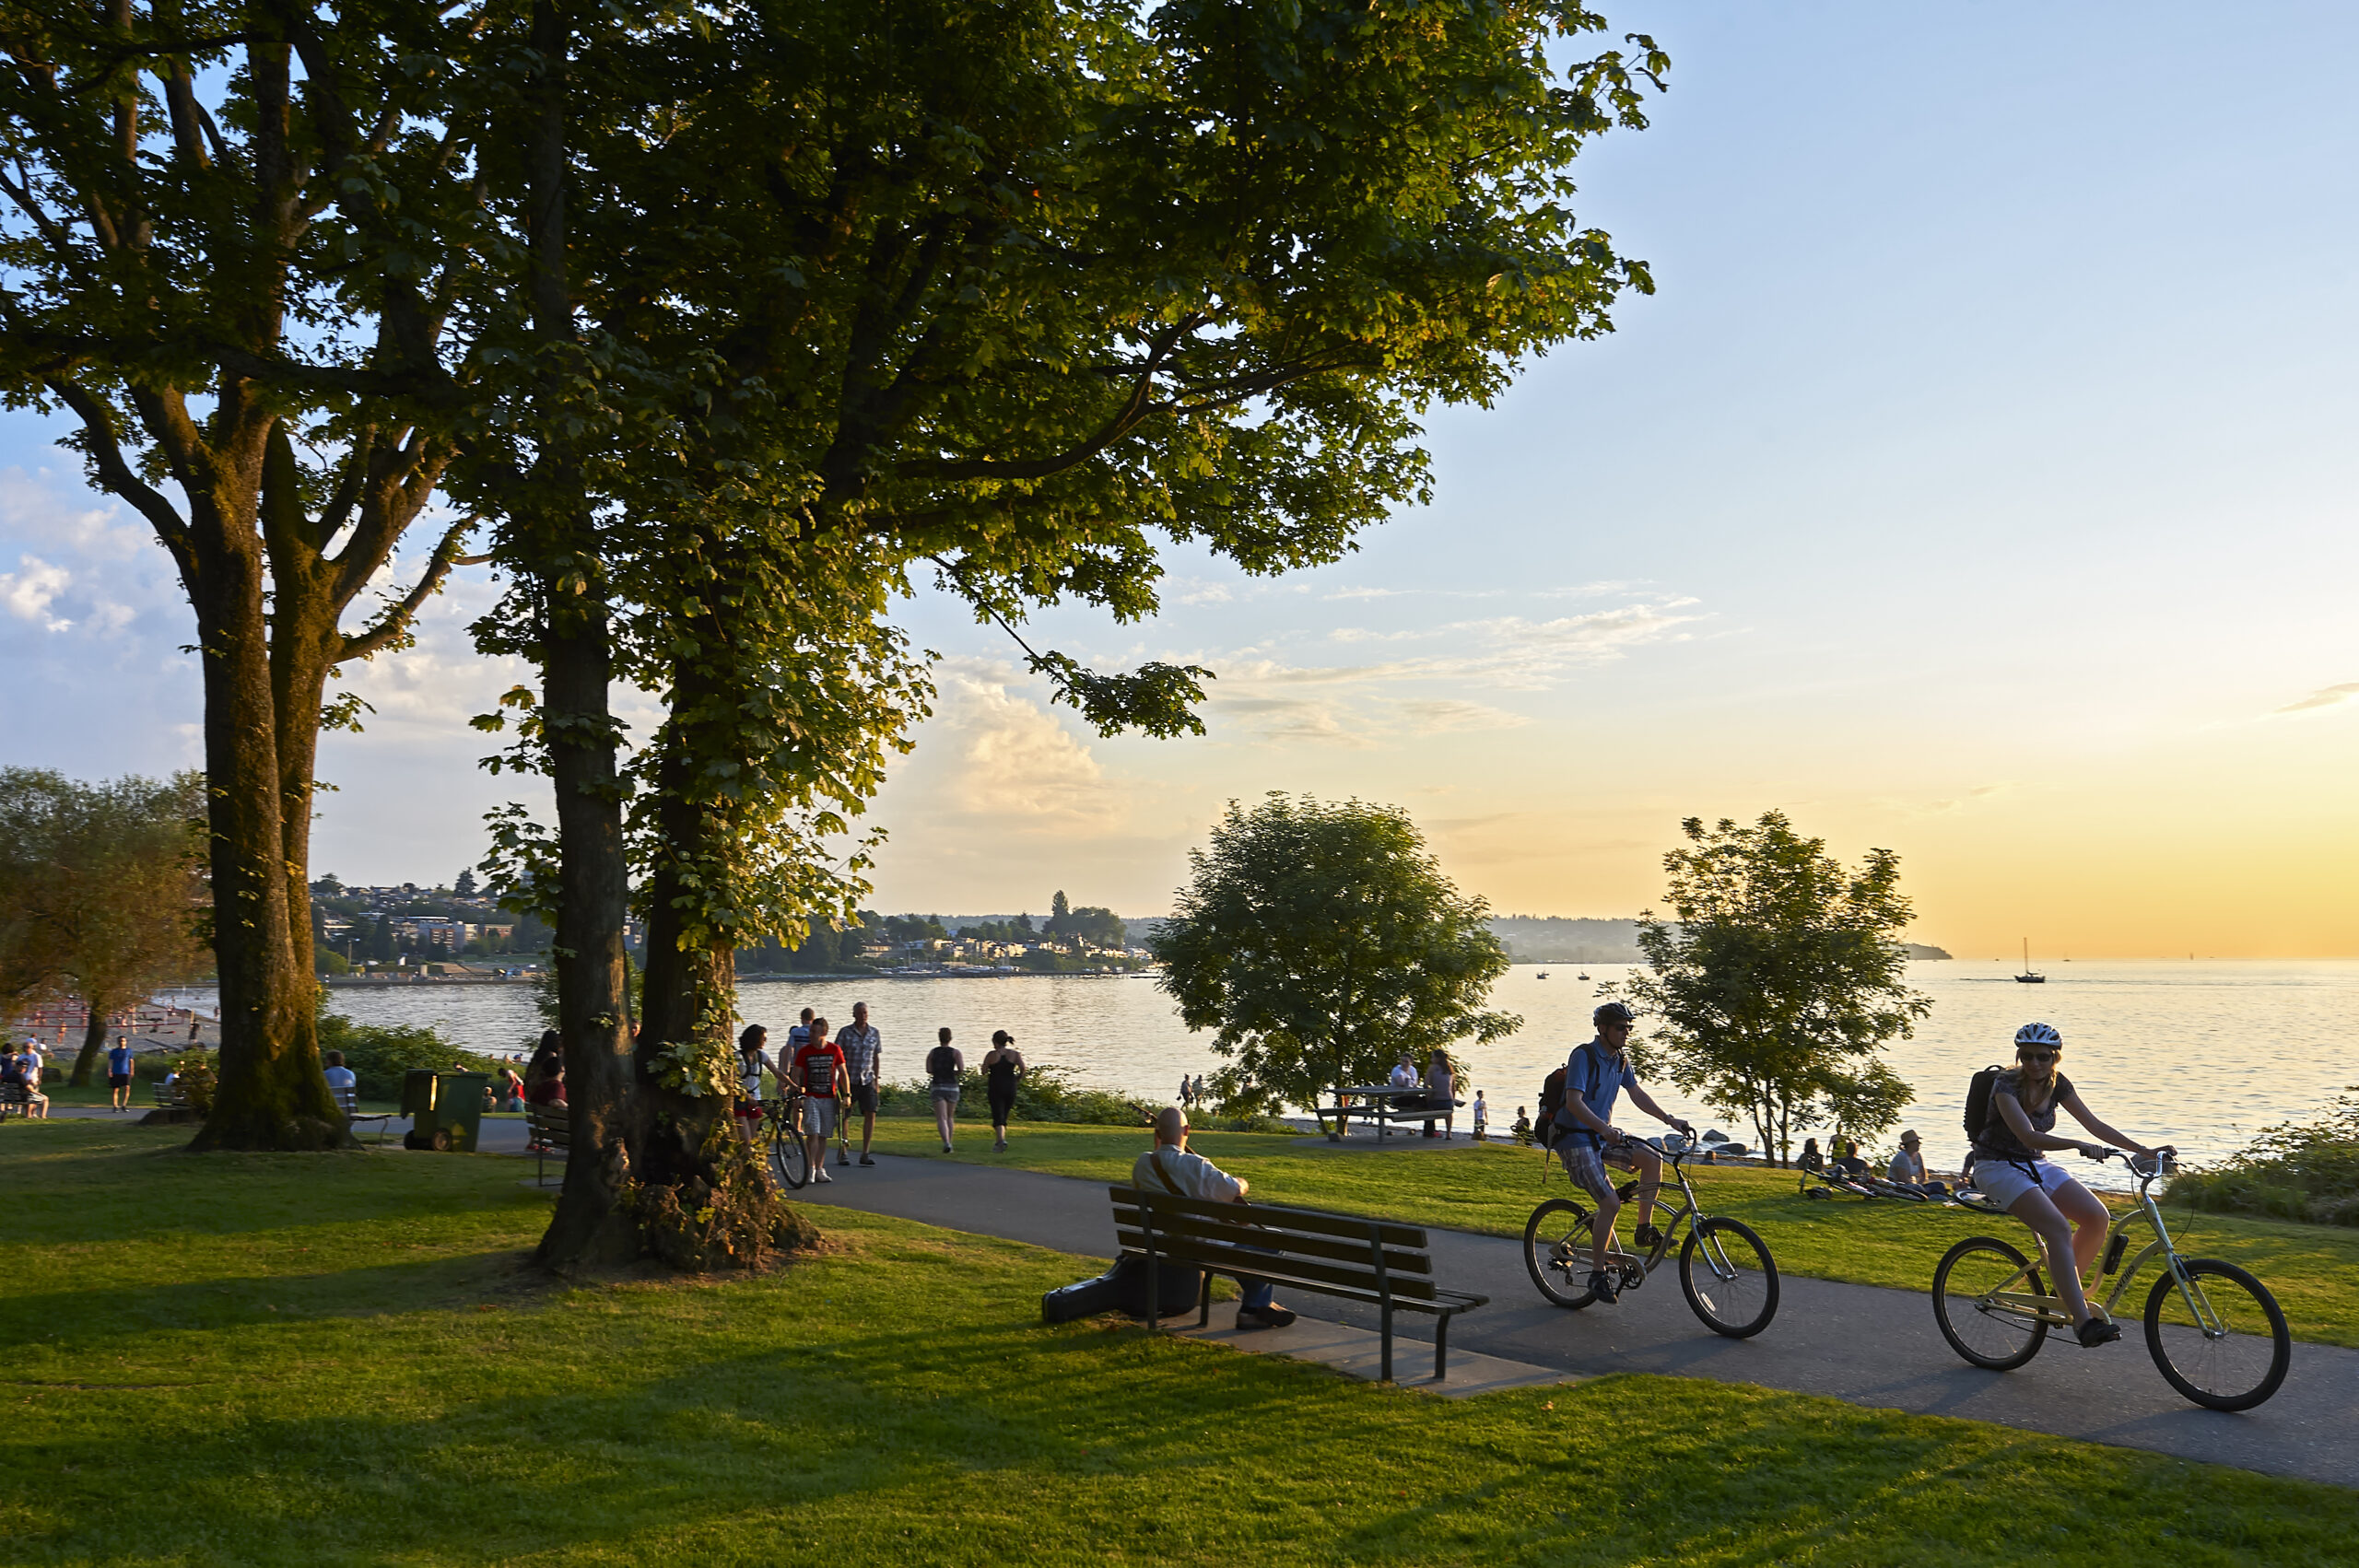 Vancouver, B.C., Canada - July 18, 2012: Young couple cycling, others walking or jogging late afternoon and enjoying the sunset at Stanley Park